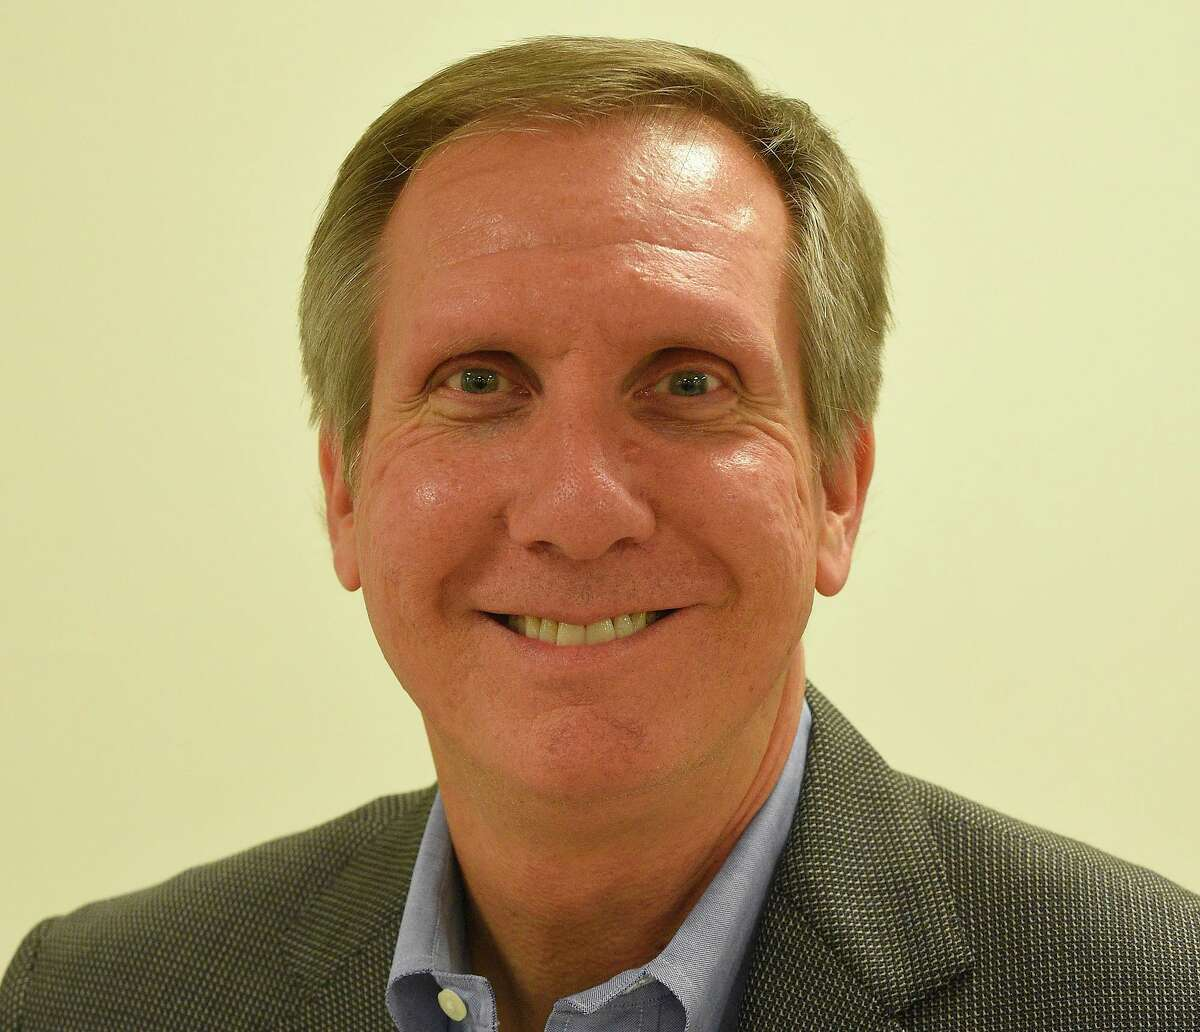 Peter Sherr, a member of the Greenwich Board of Education.